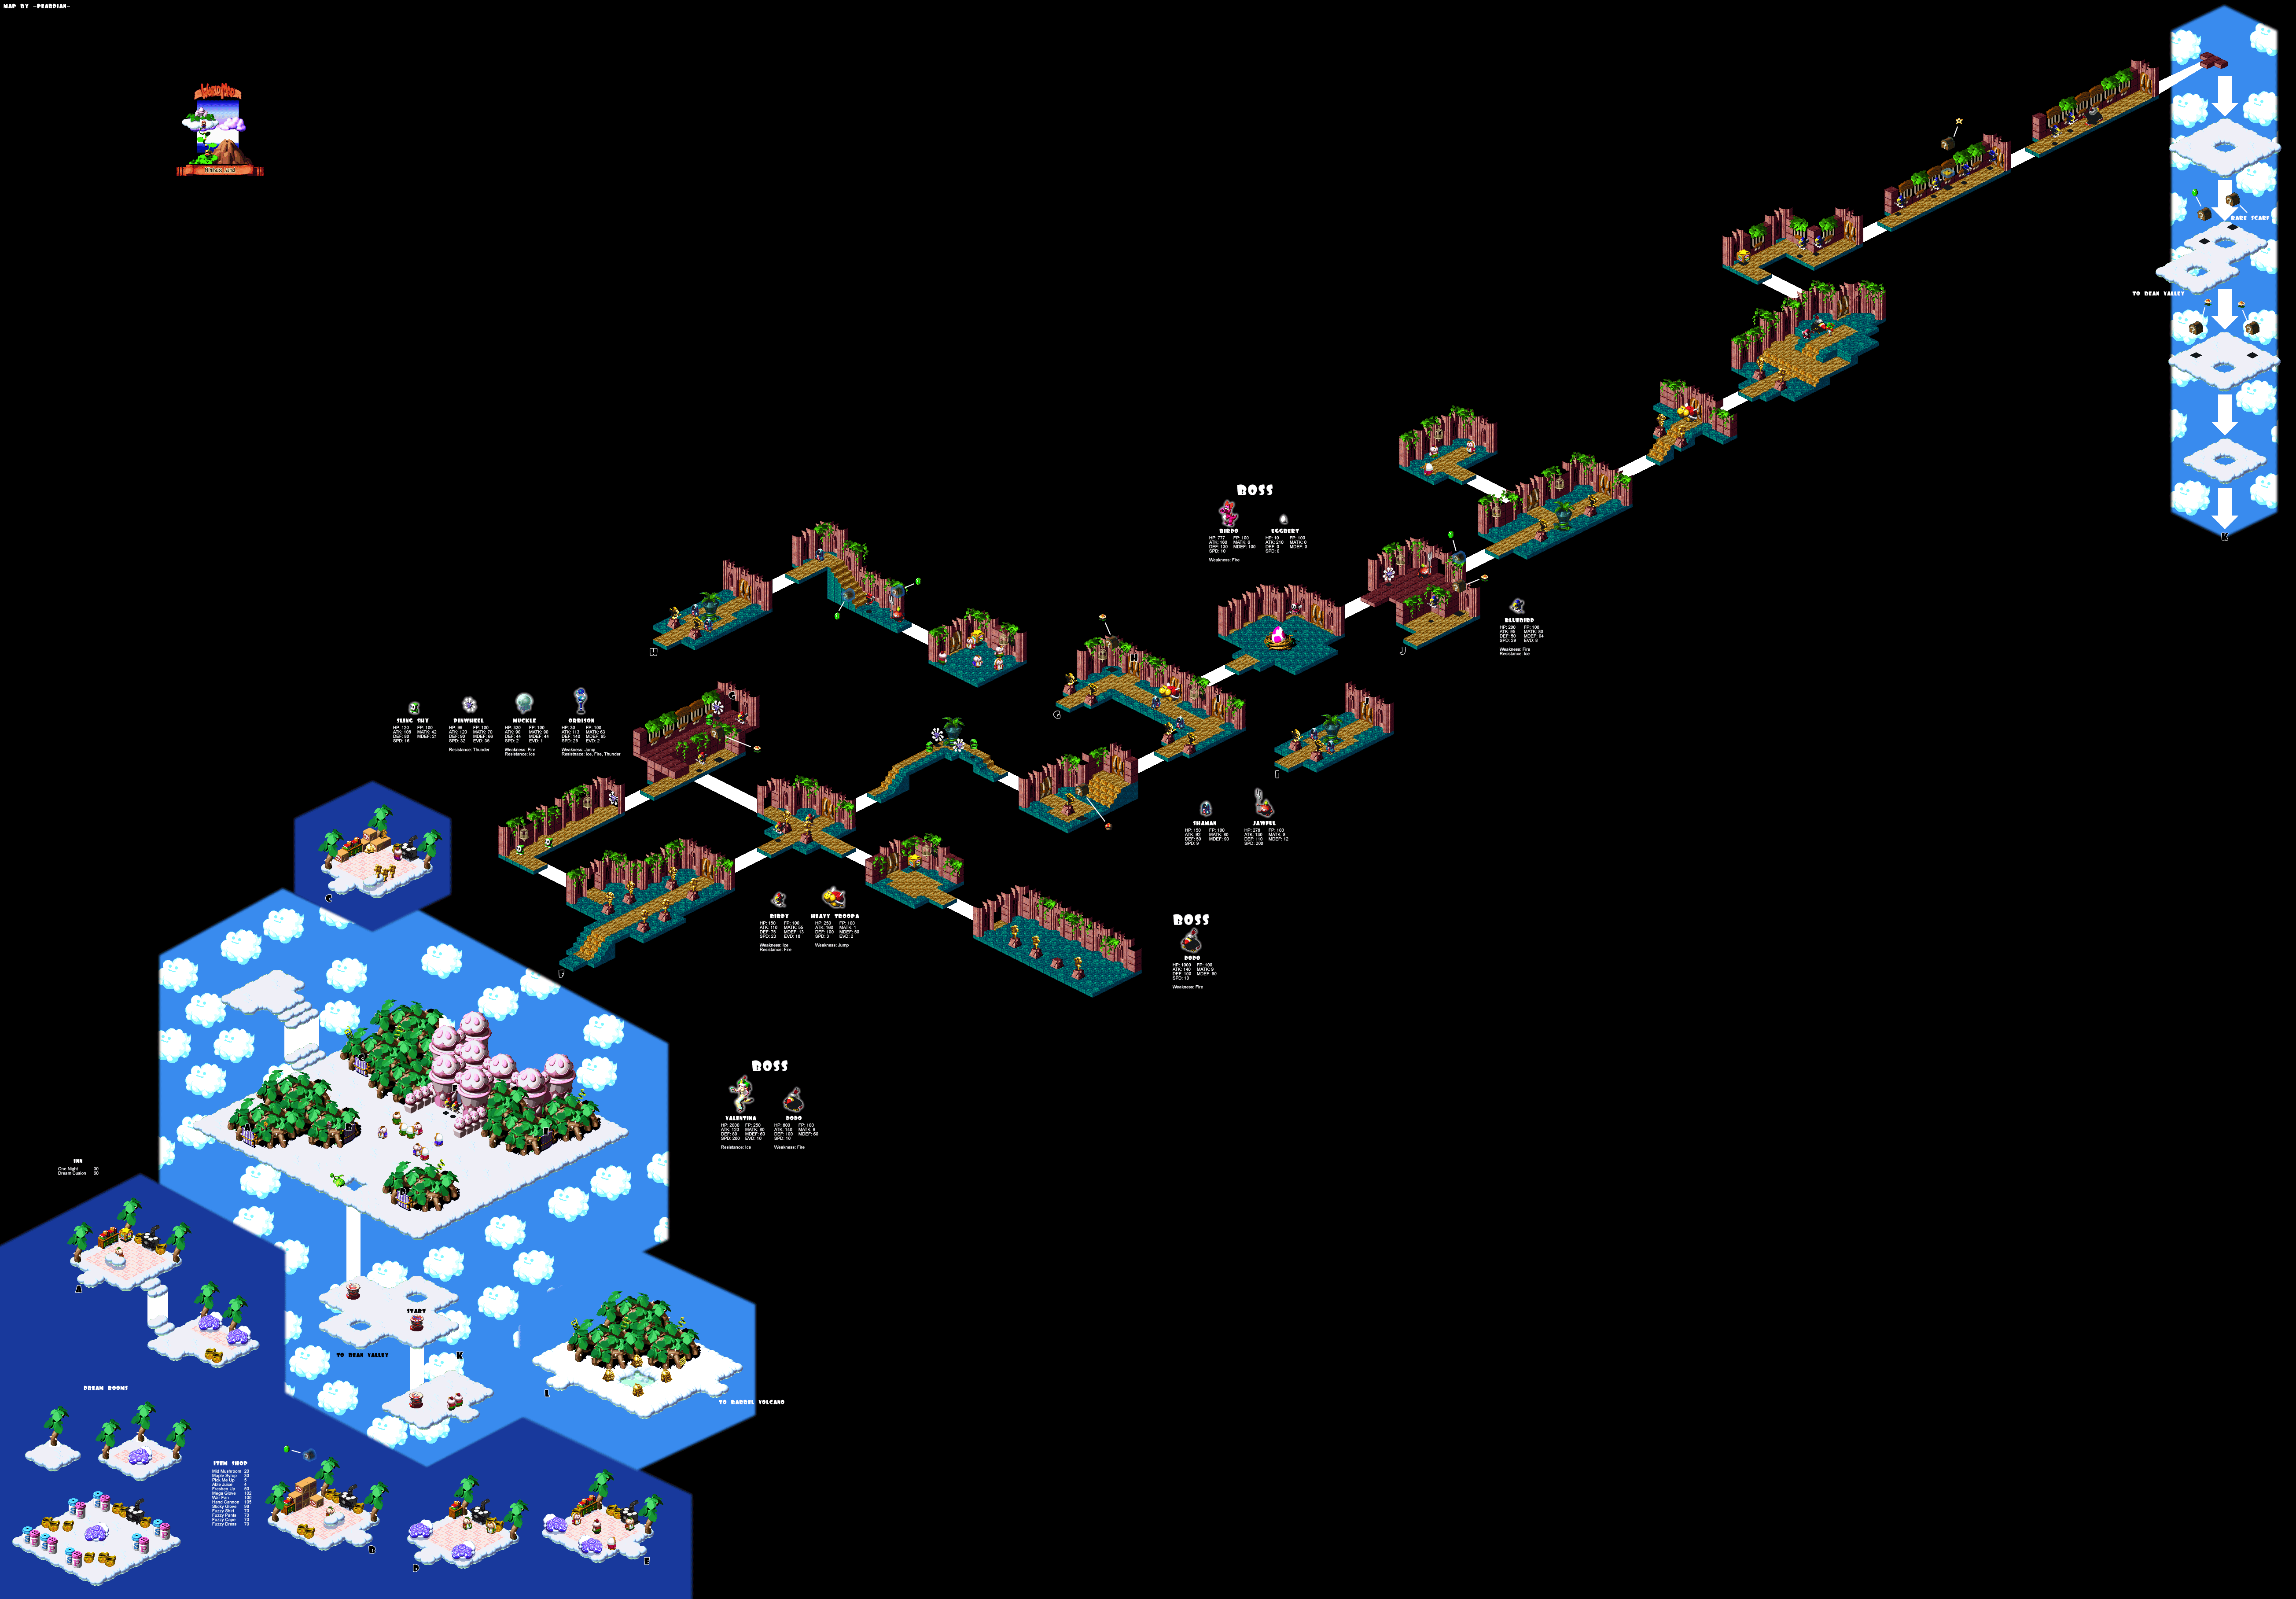 Mario Rpg Map Hd Wallpapers Home Design